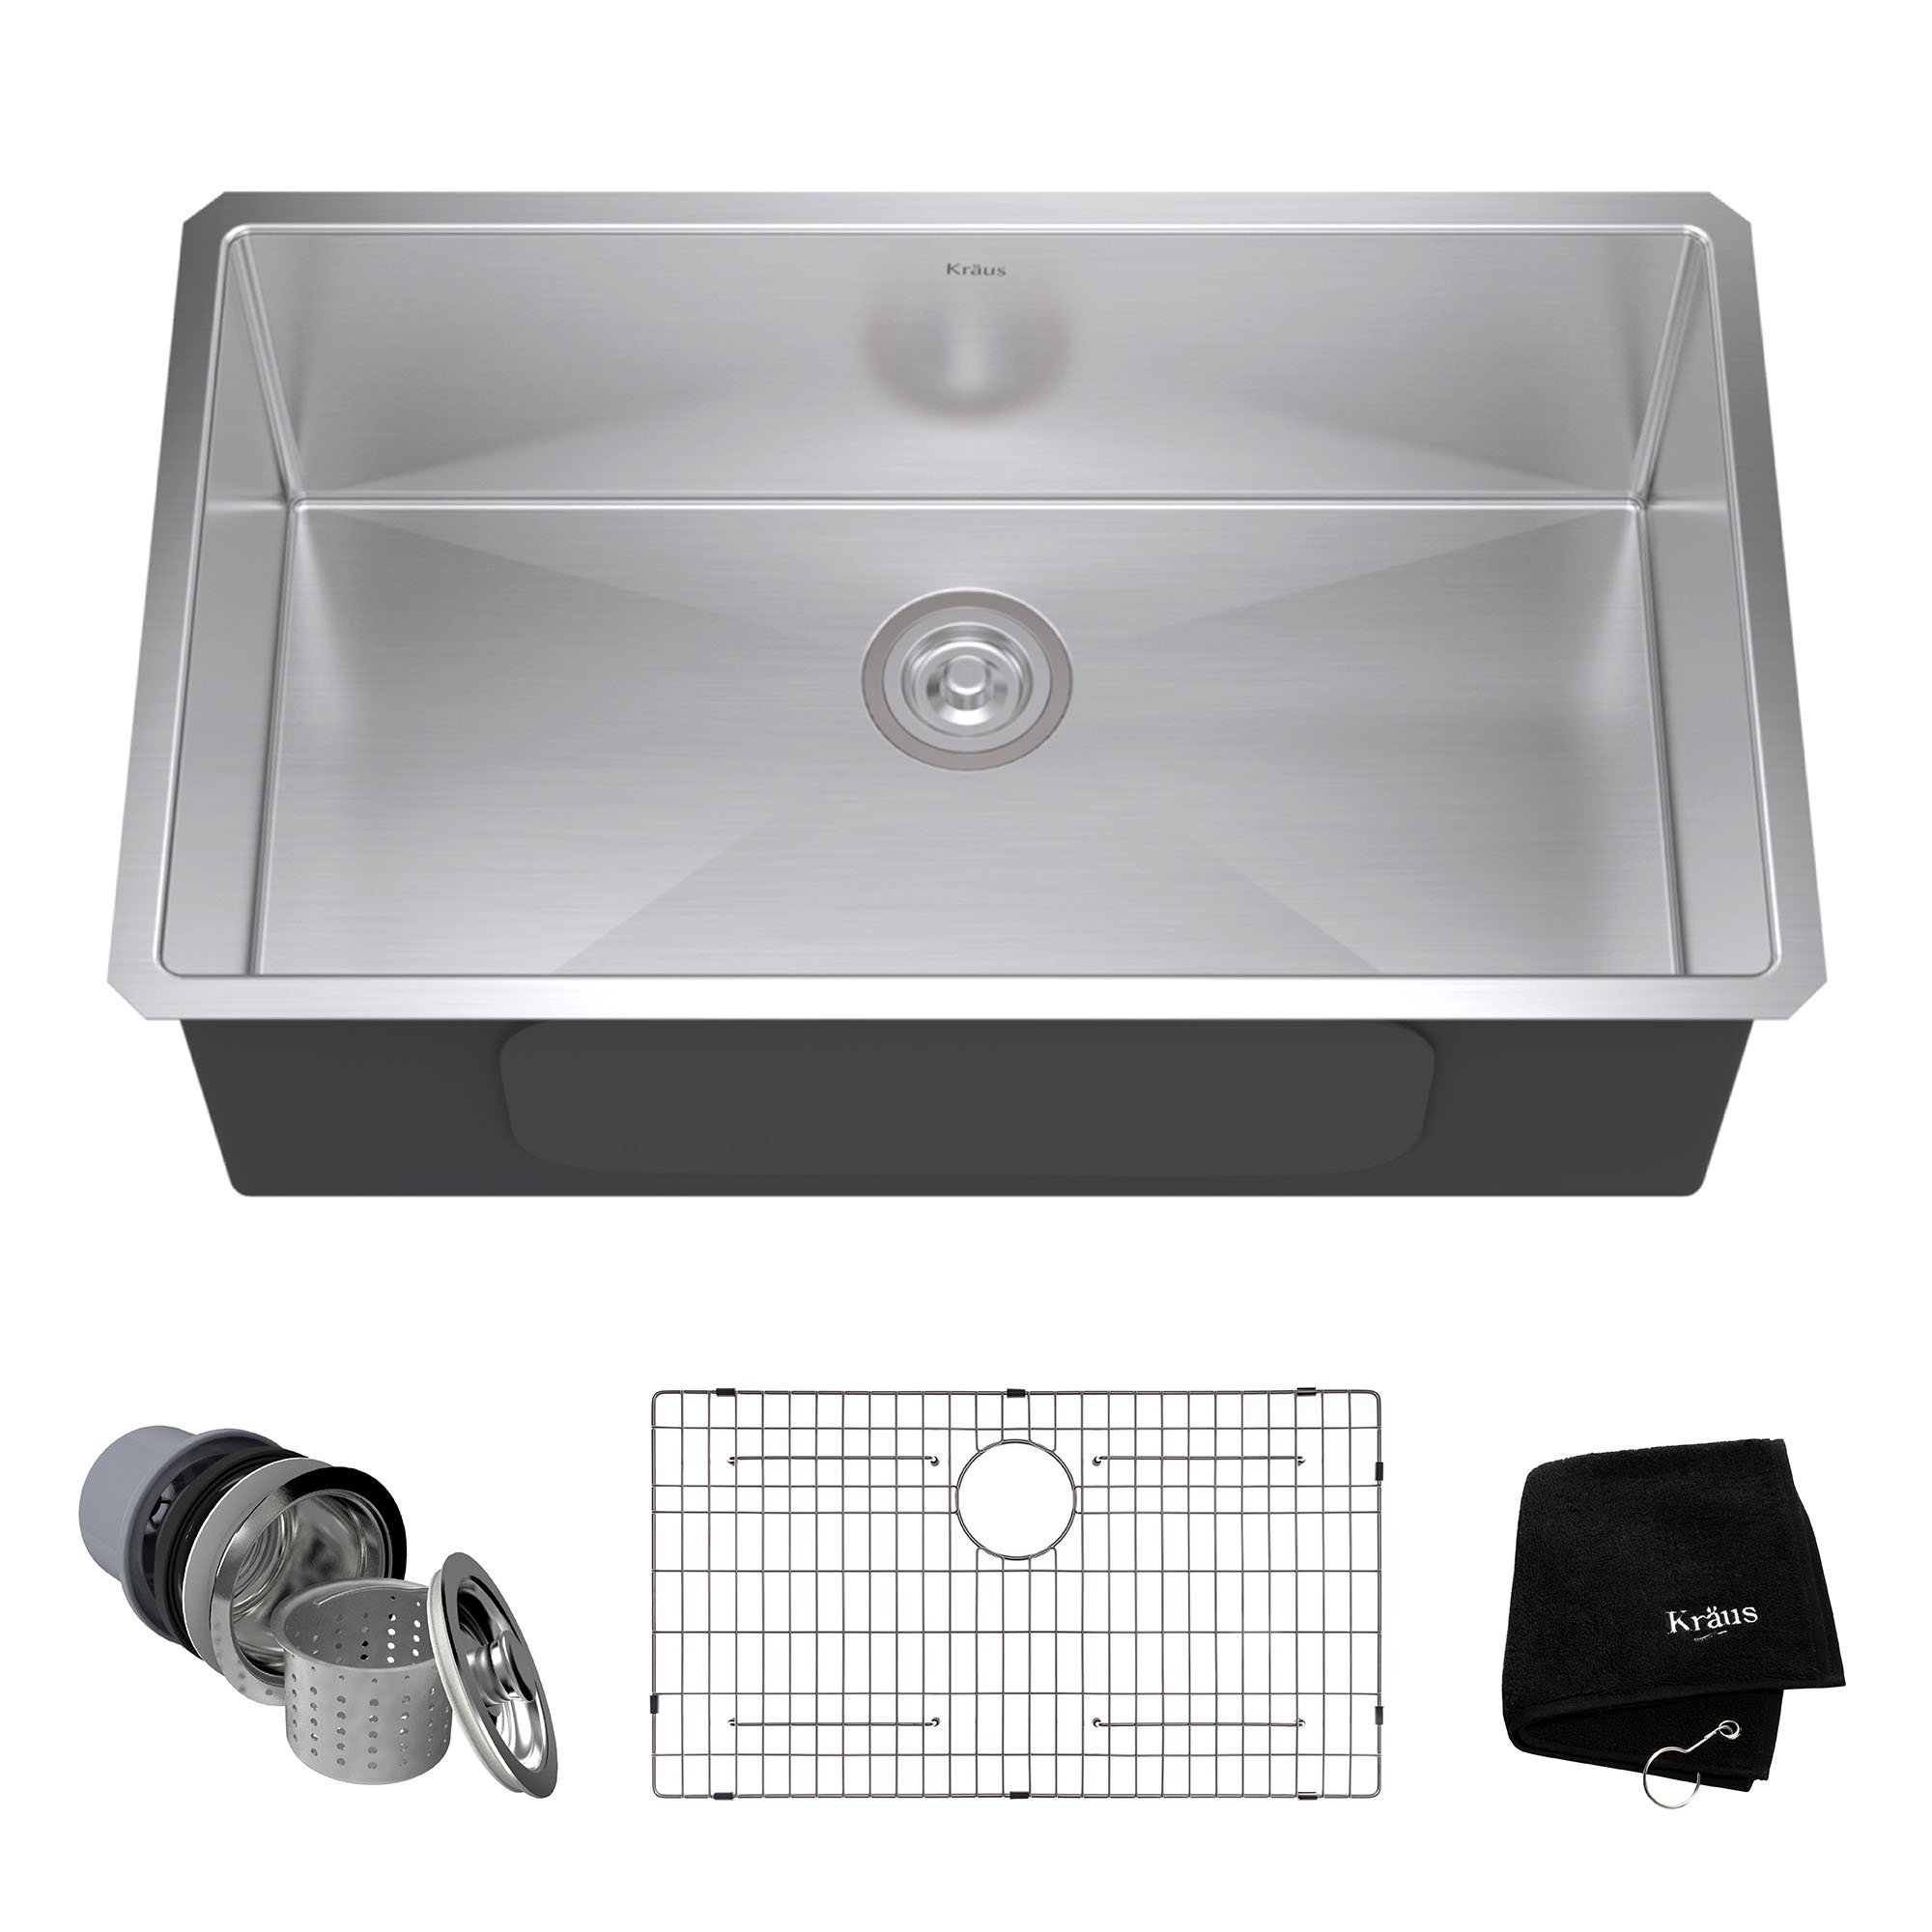 Kraus KHU100-32 32-inch 16 Gauge Undermount Single Bowl Stainless Steel Kitchen Sink by Kraus